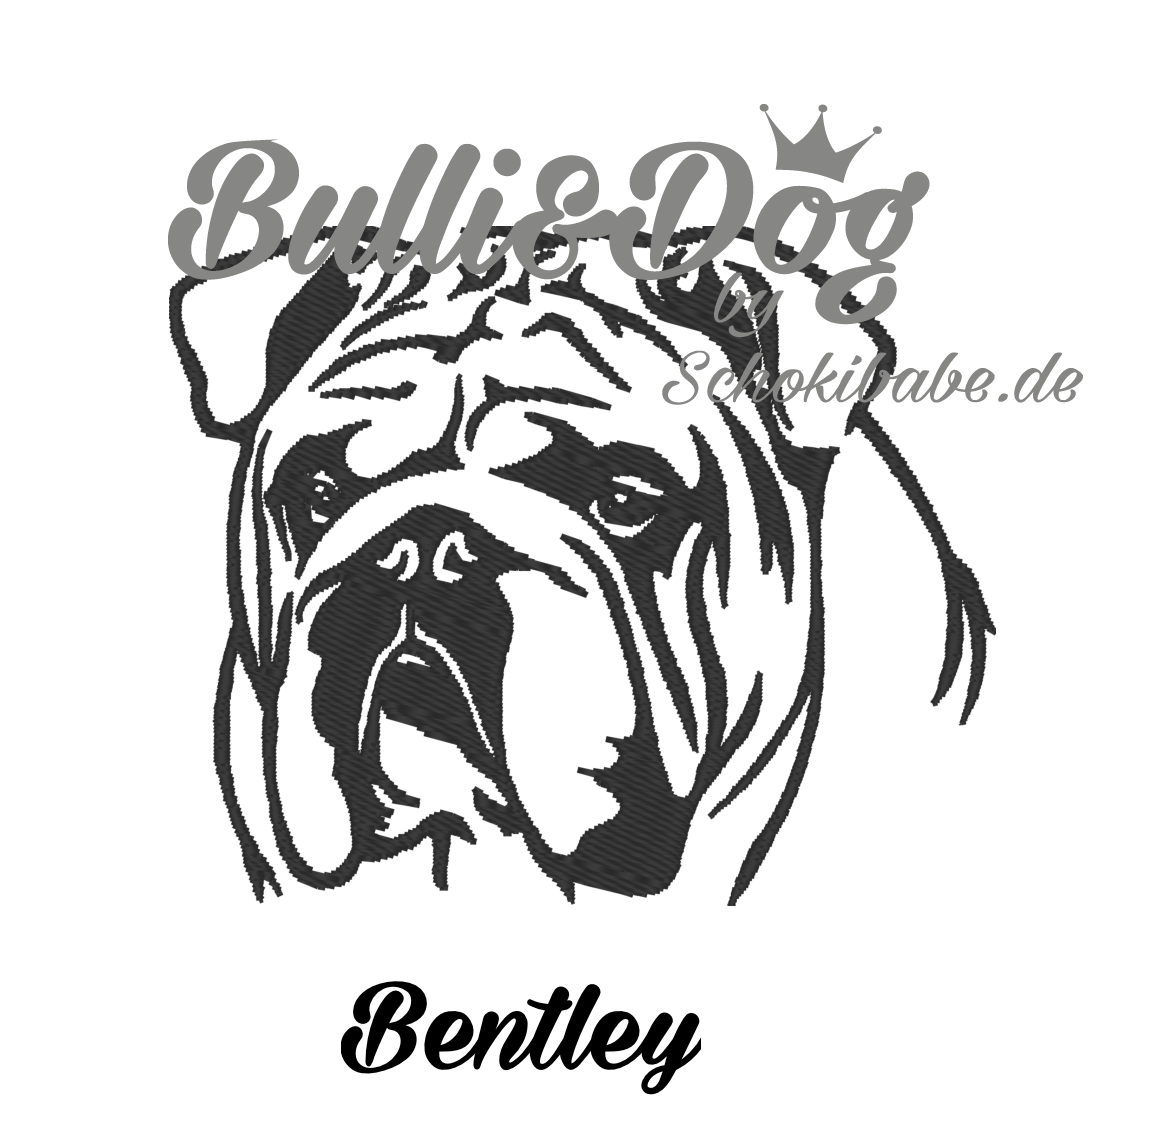 Bentley_EB_7x5-8-Kopie5b5c22757a9aa